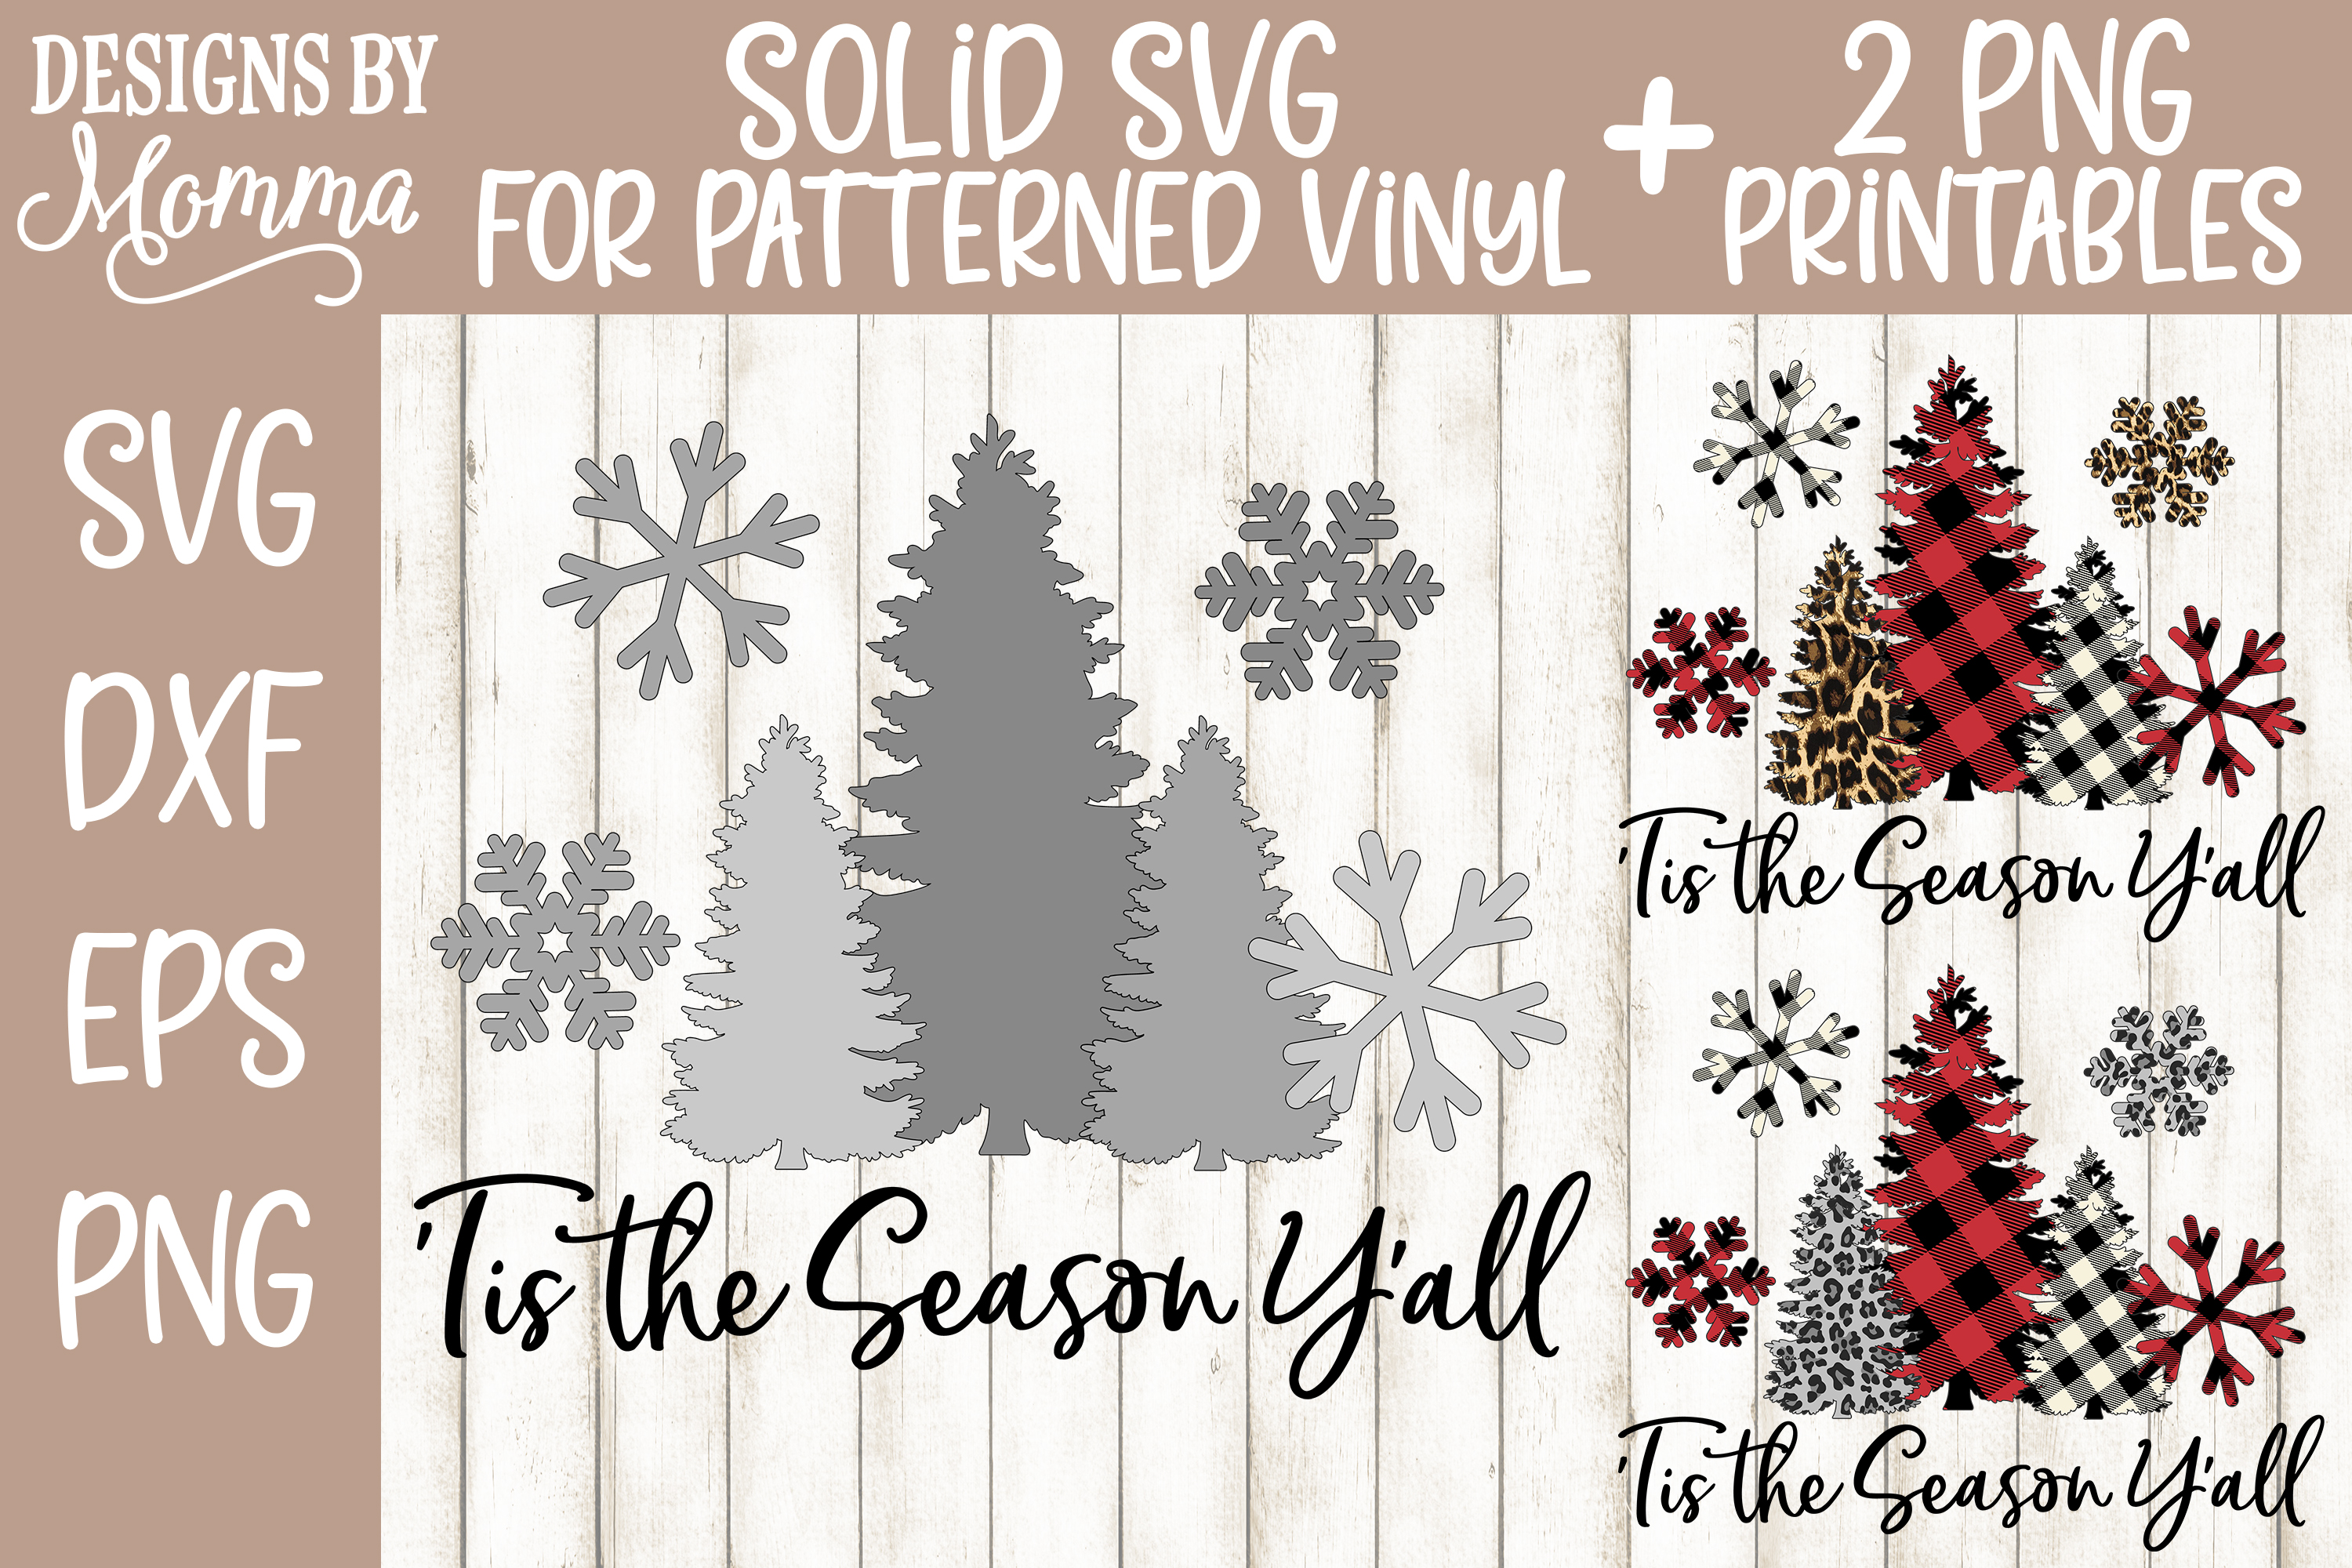 'Tis the Season Y'all Trees and Snowflakes SVG plus two PNGs example image 2